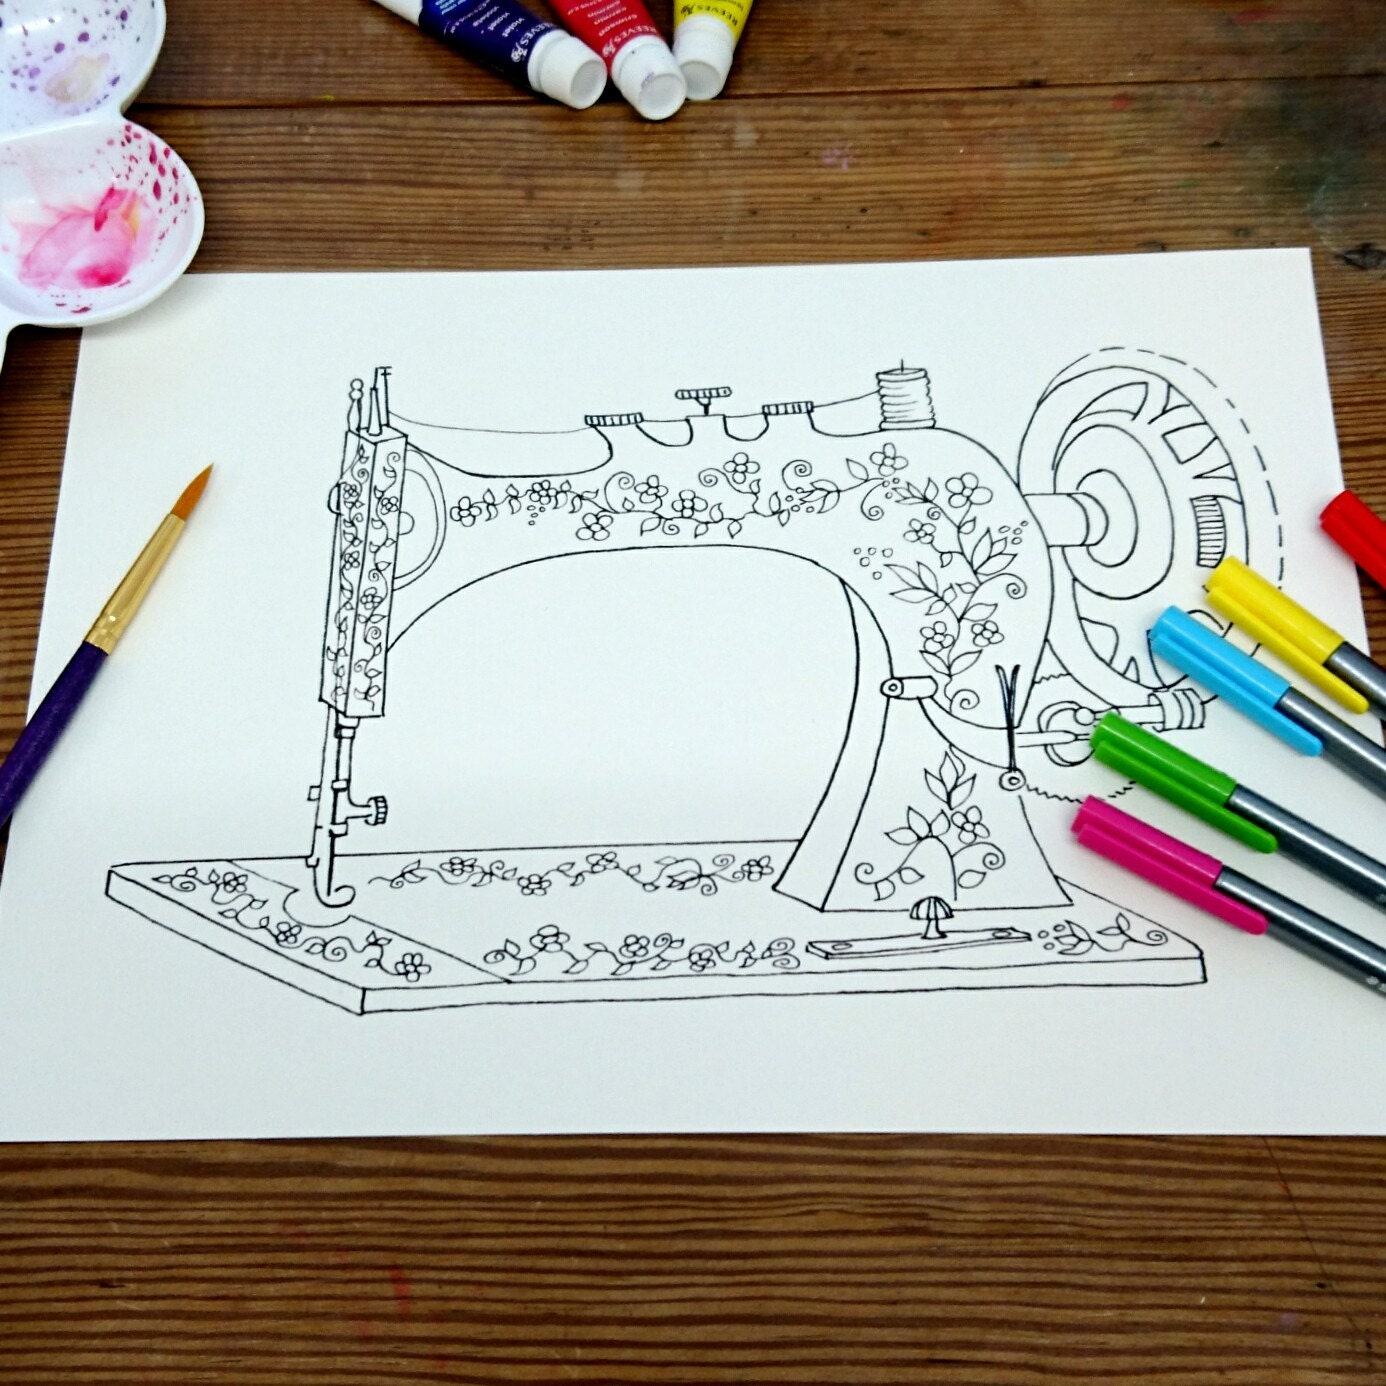 Vintage Sewing Machine Colouring painting sheet for Adults